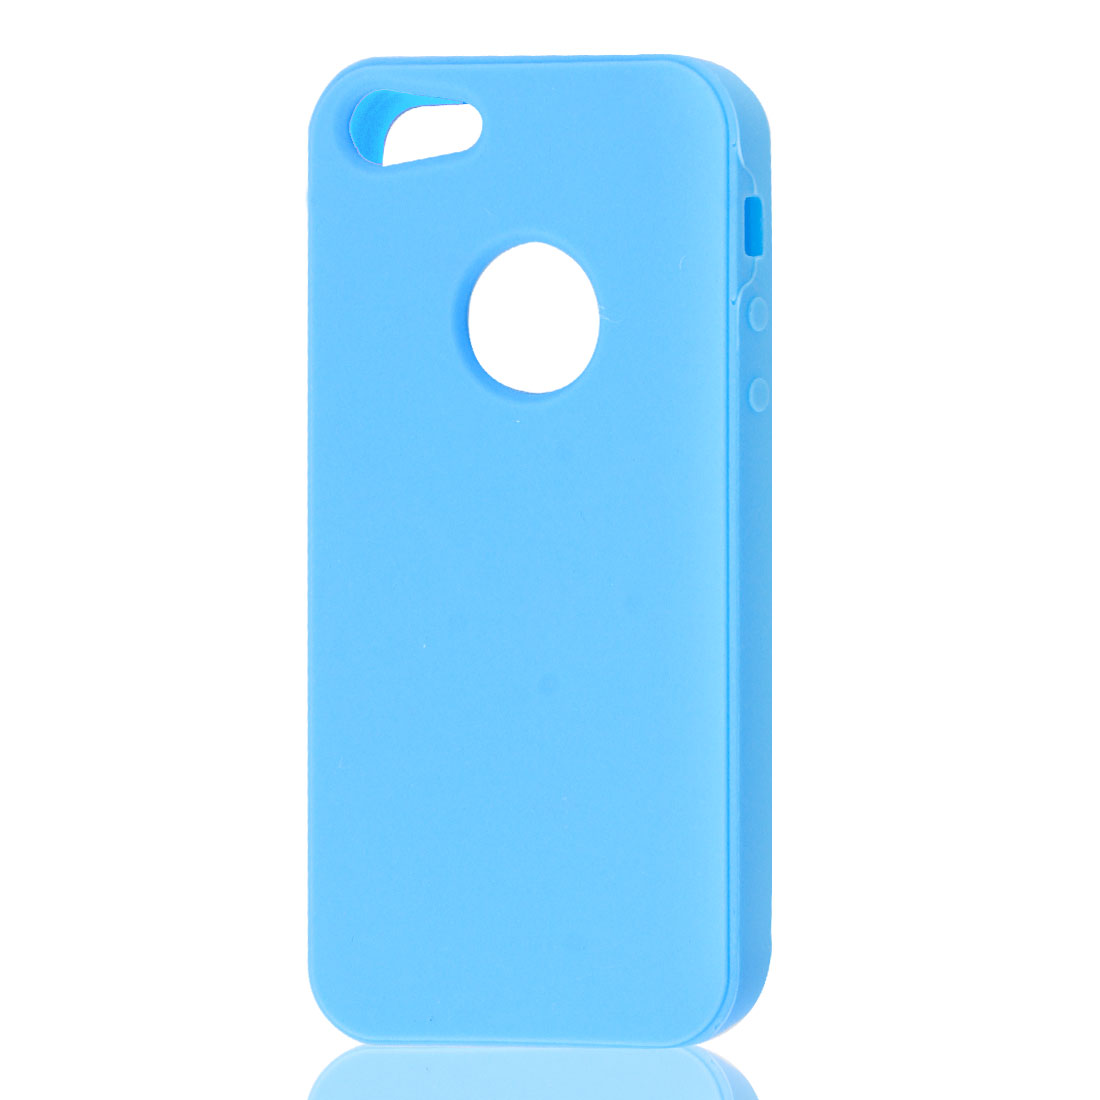 Sky Blue Silicone Protective Soft Case Skin Cover for Apple iPhone 5 5G